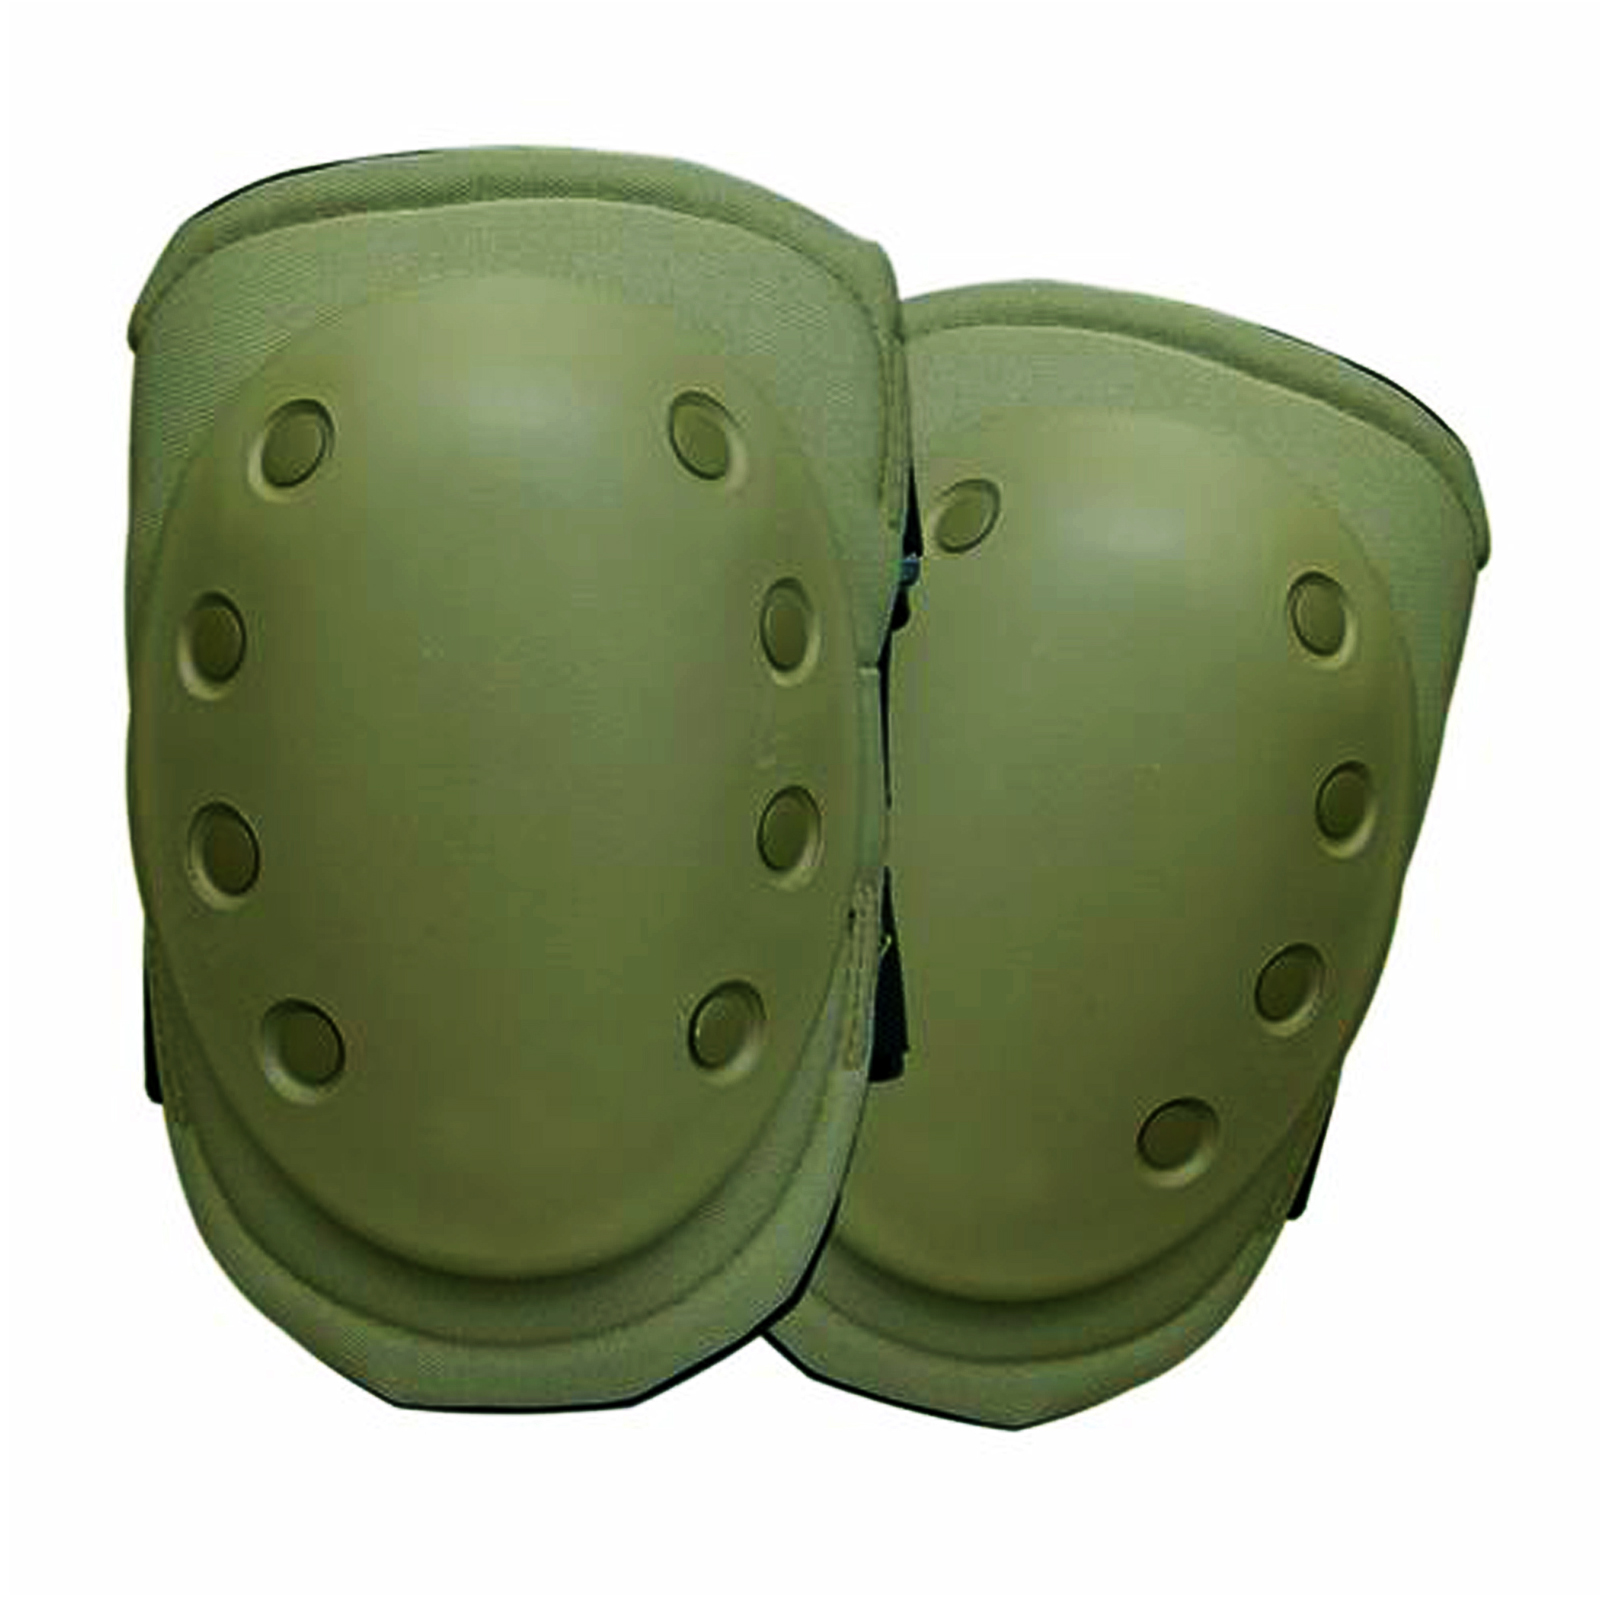 Condor #KP1 Tactical Density Foam Padding Knee Pads OD Green by Condor